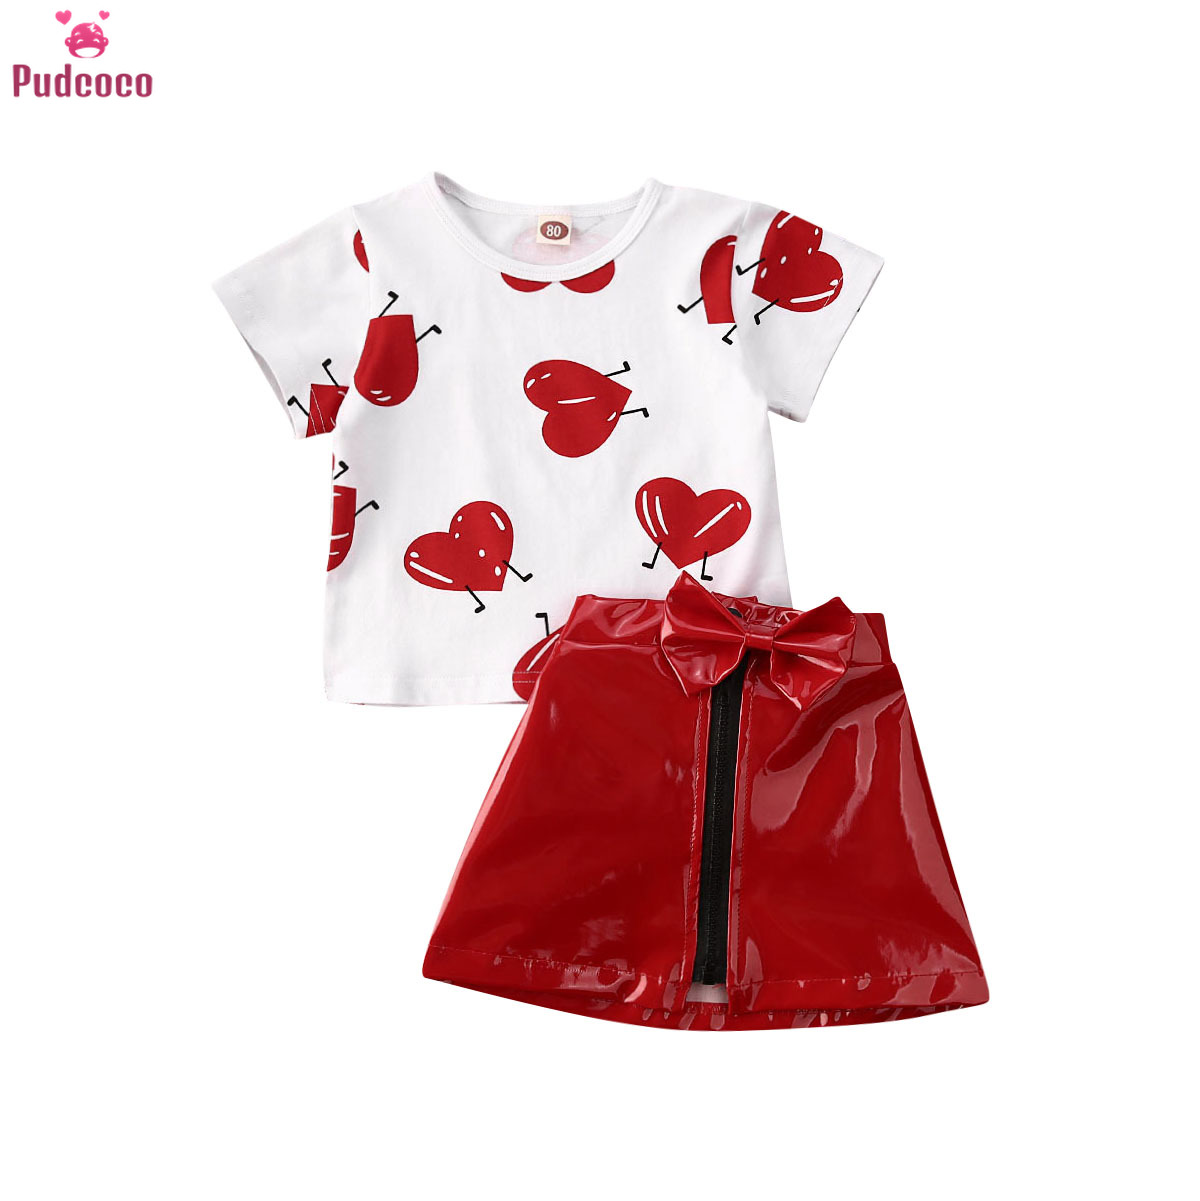 Valentine'S Days Kids Baby Girls Clothes Set Love Printed T-shirt Tops And Leather Zip Skirt Summer Outfits 0-5 Years